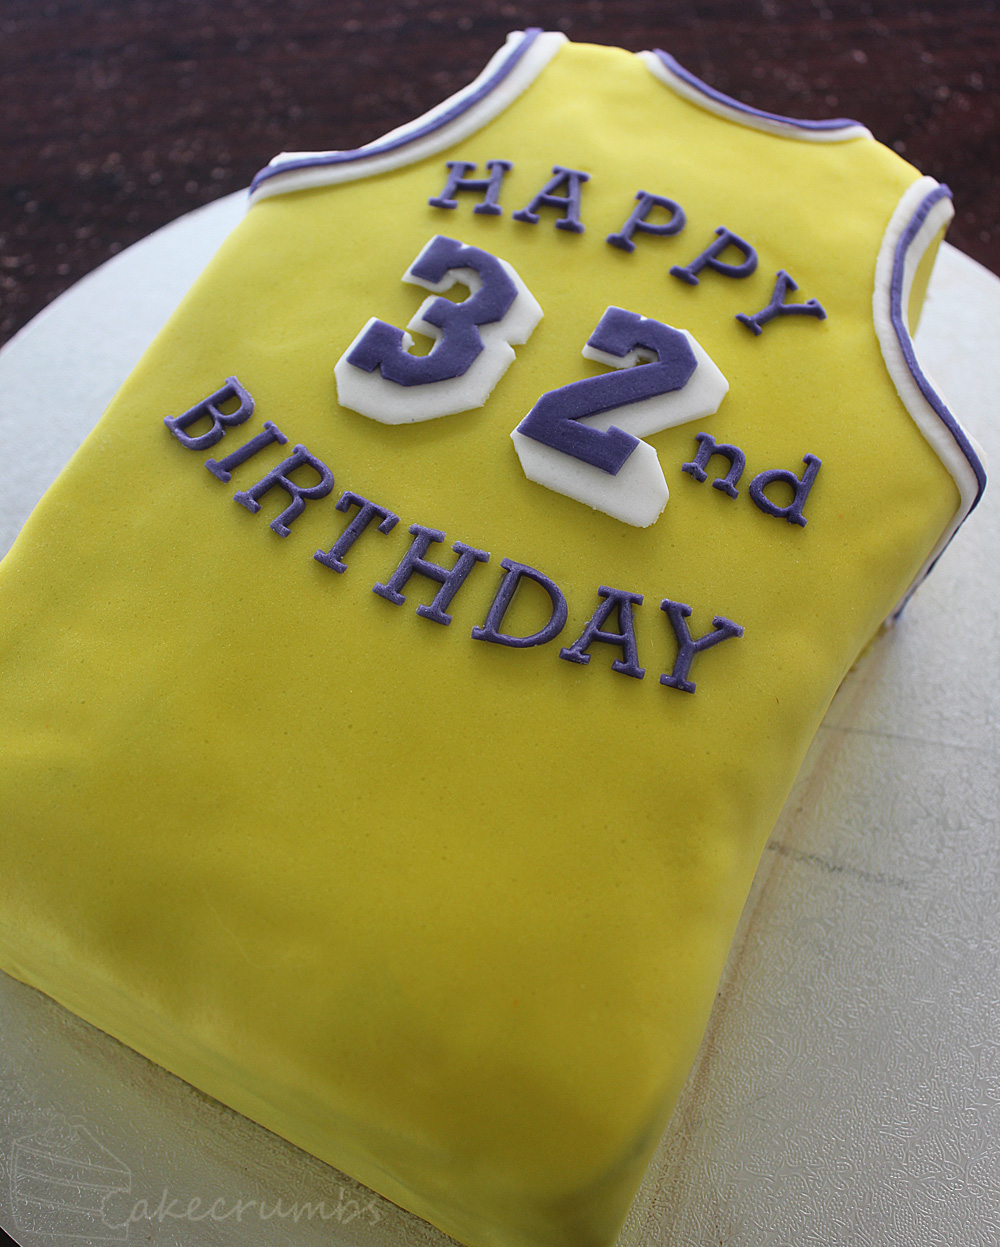 Cakecrumbs Magic Johnson Birthday Cake 05